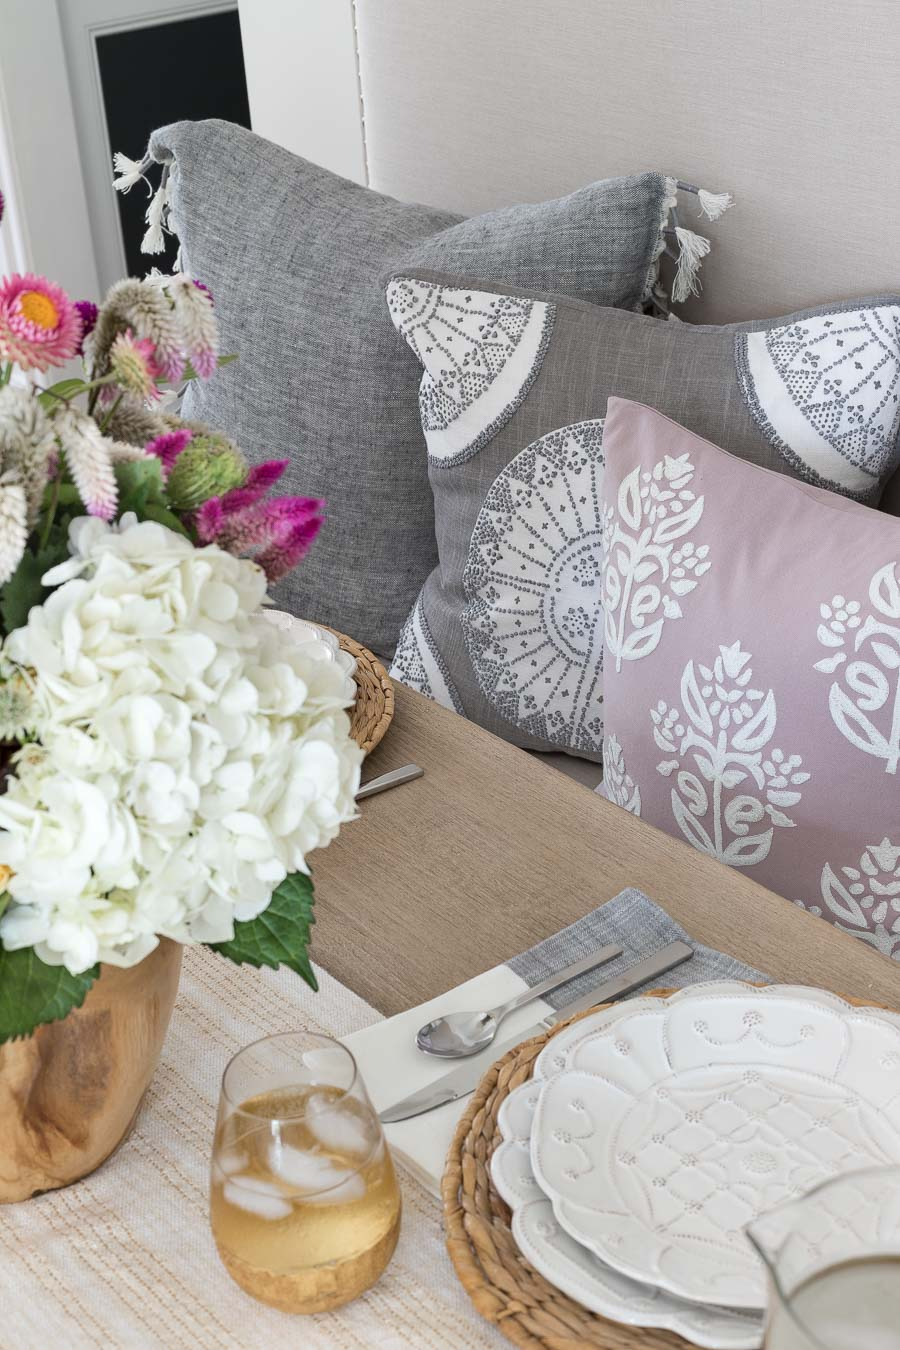 Pretty combination of lavender and gray pillows!